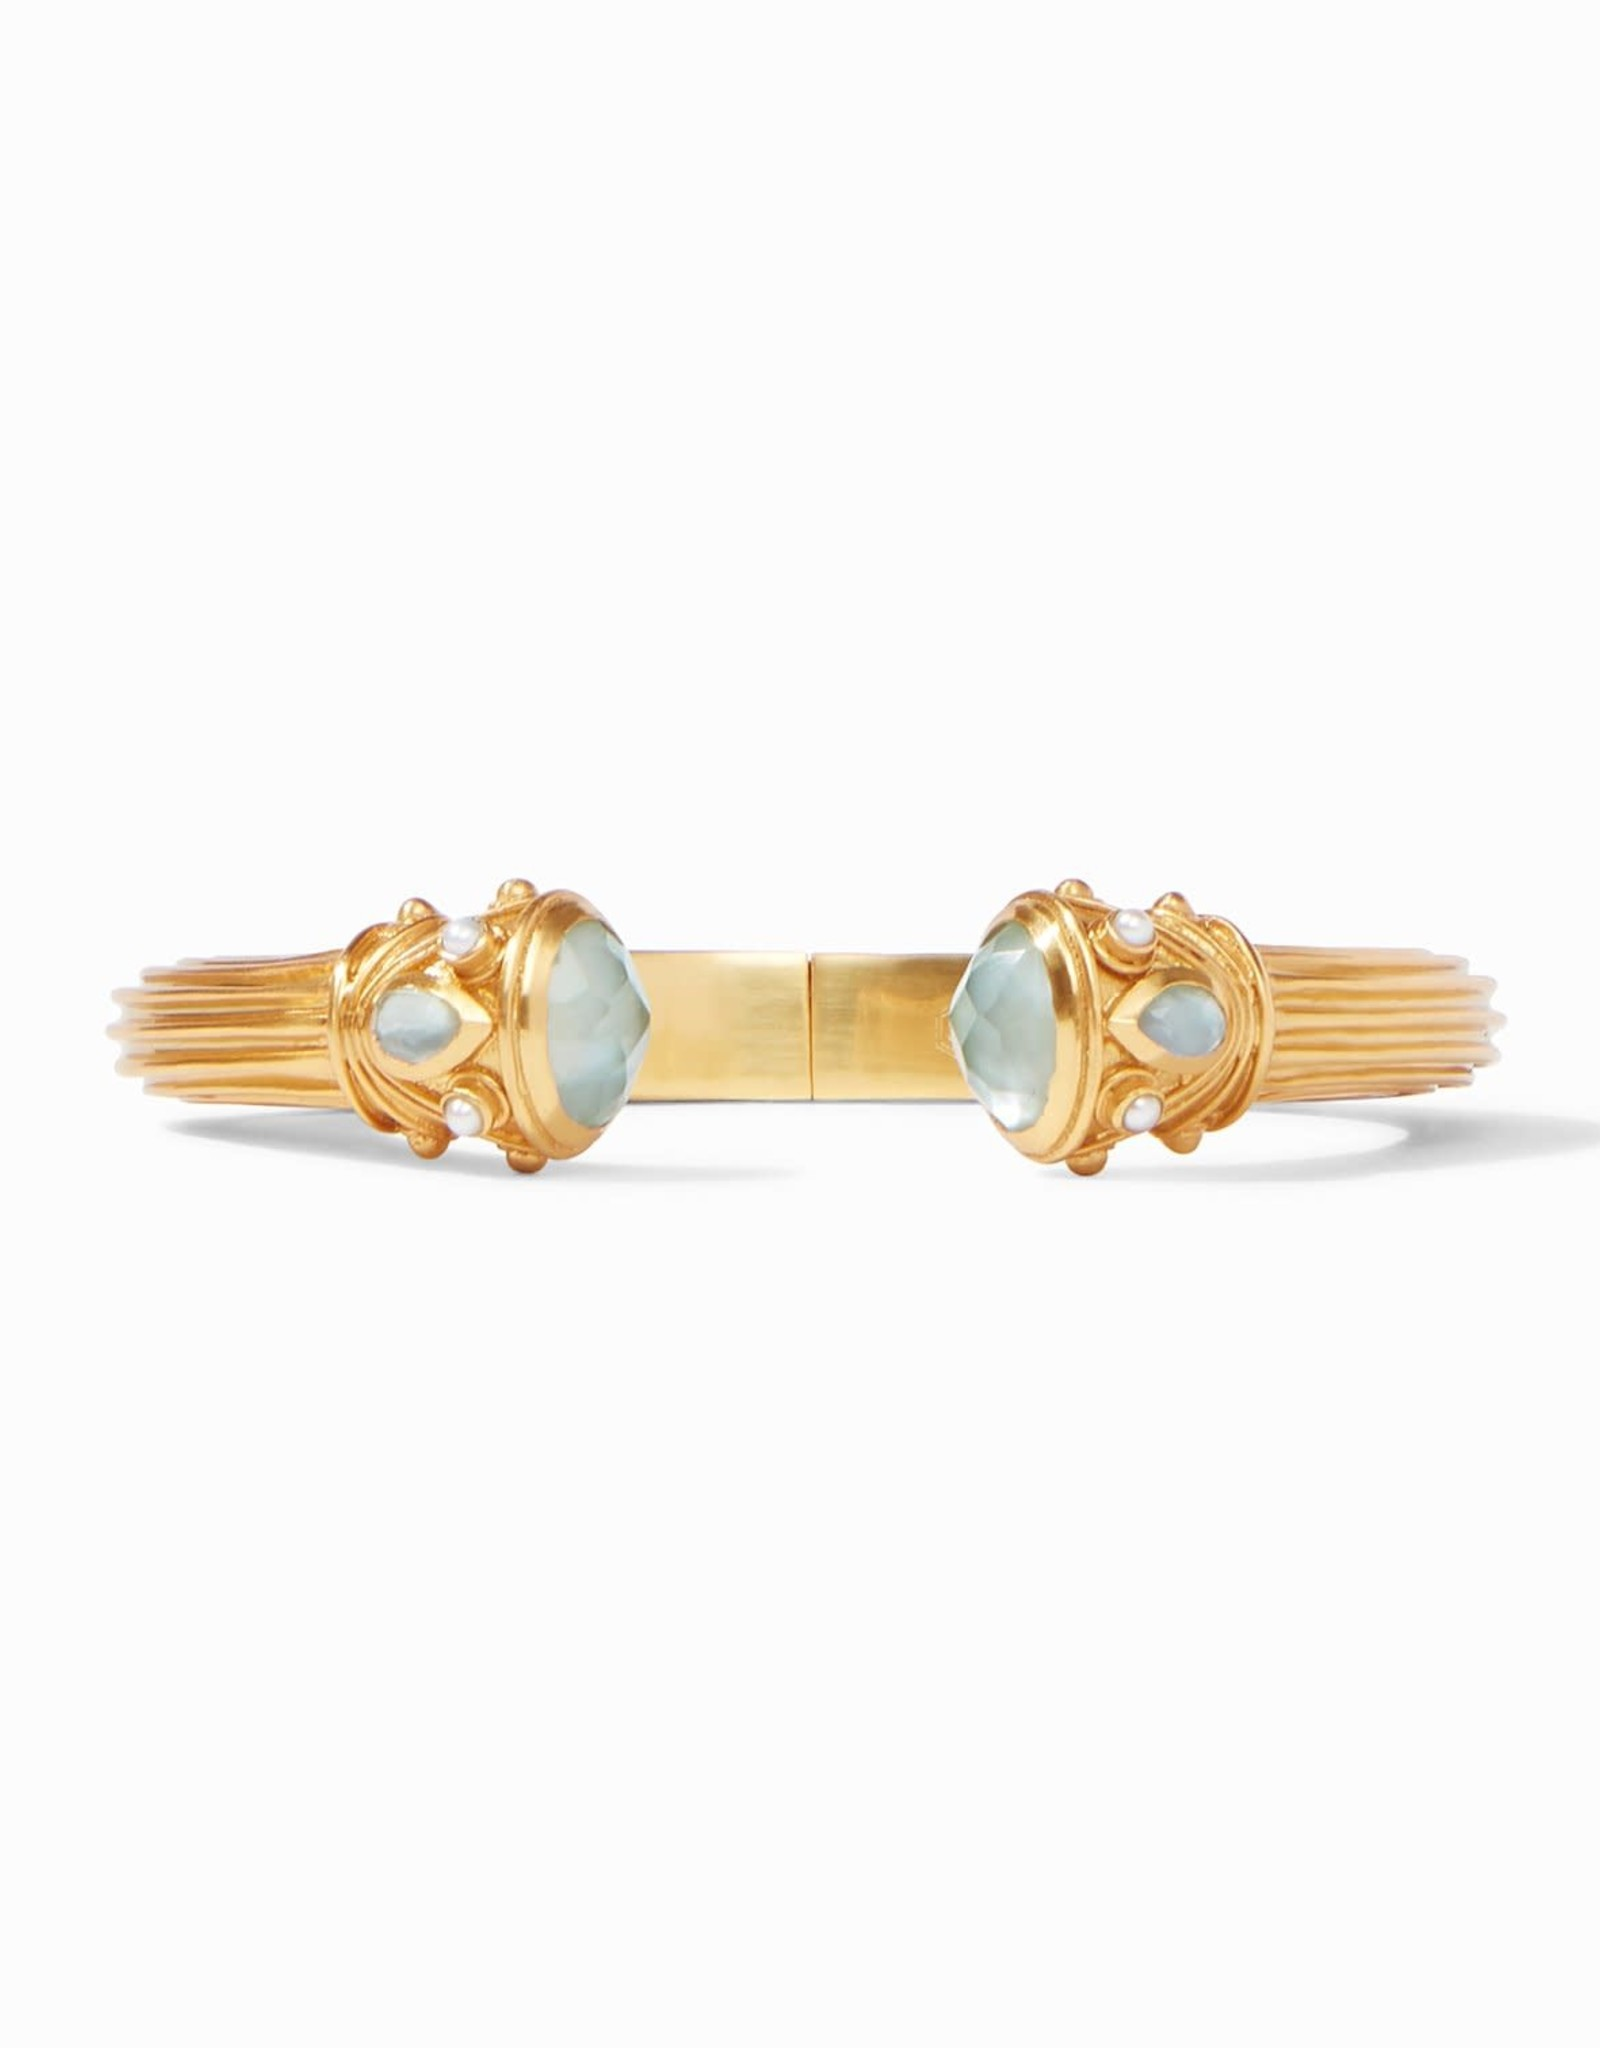 Julie Vos Byzantine Demi Hinge Cuff Gold Iridescent Aquamarine Blue Endcaps with Iridescent Aquamarine and Fresh Water Pearl Accents